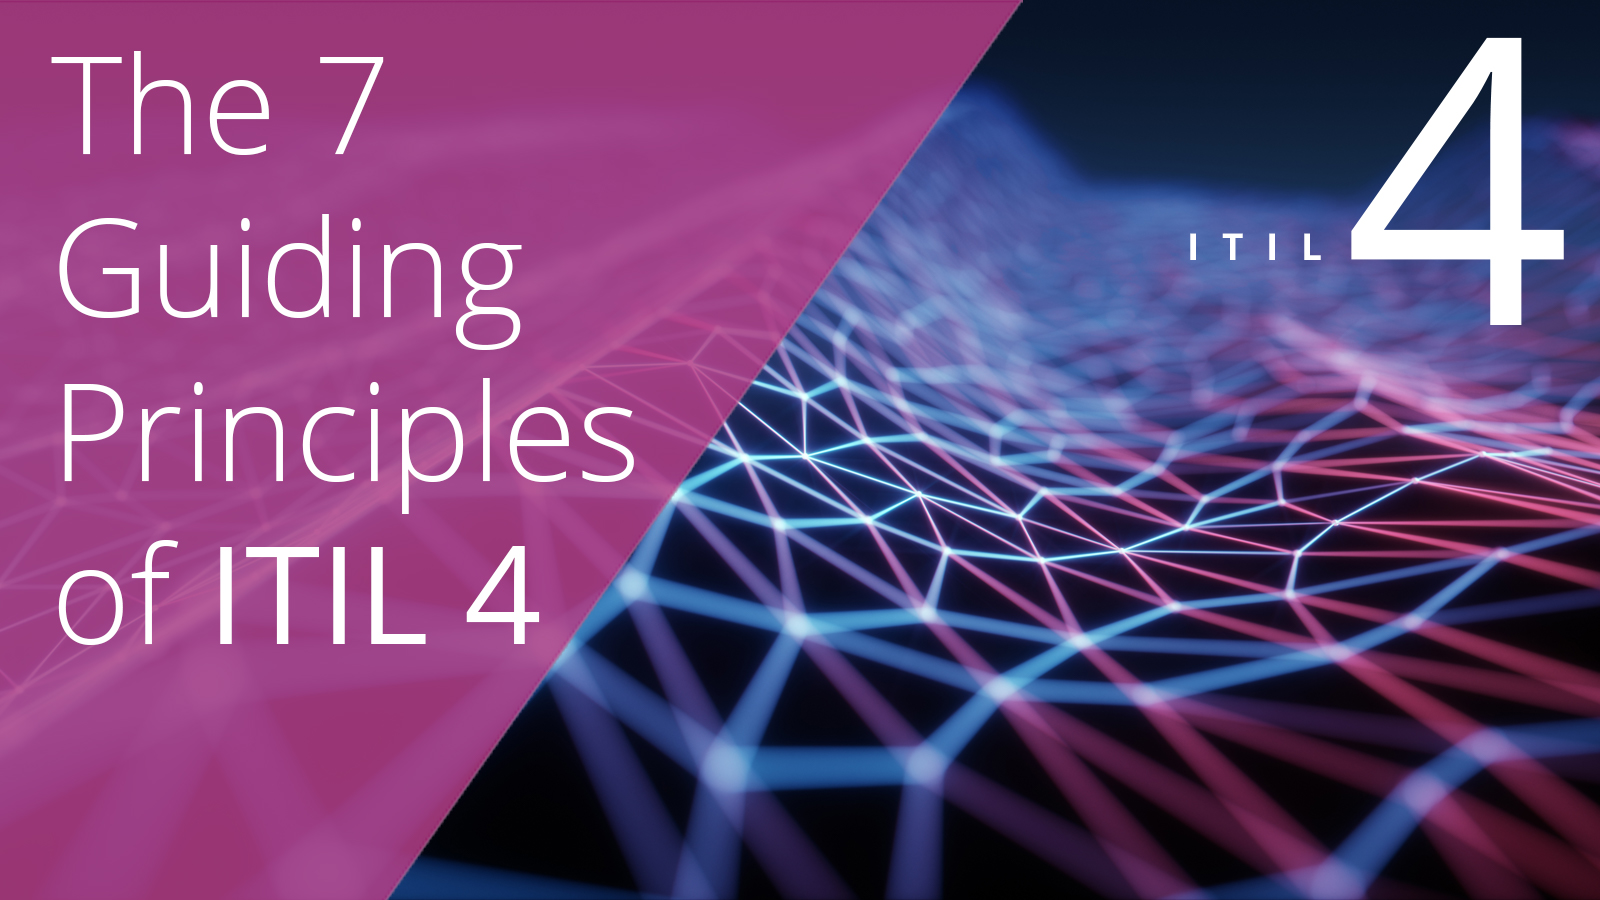 The 7 Guiding Principles of ITIL 4